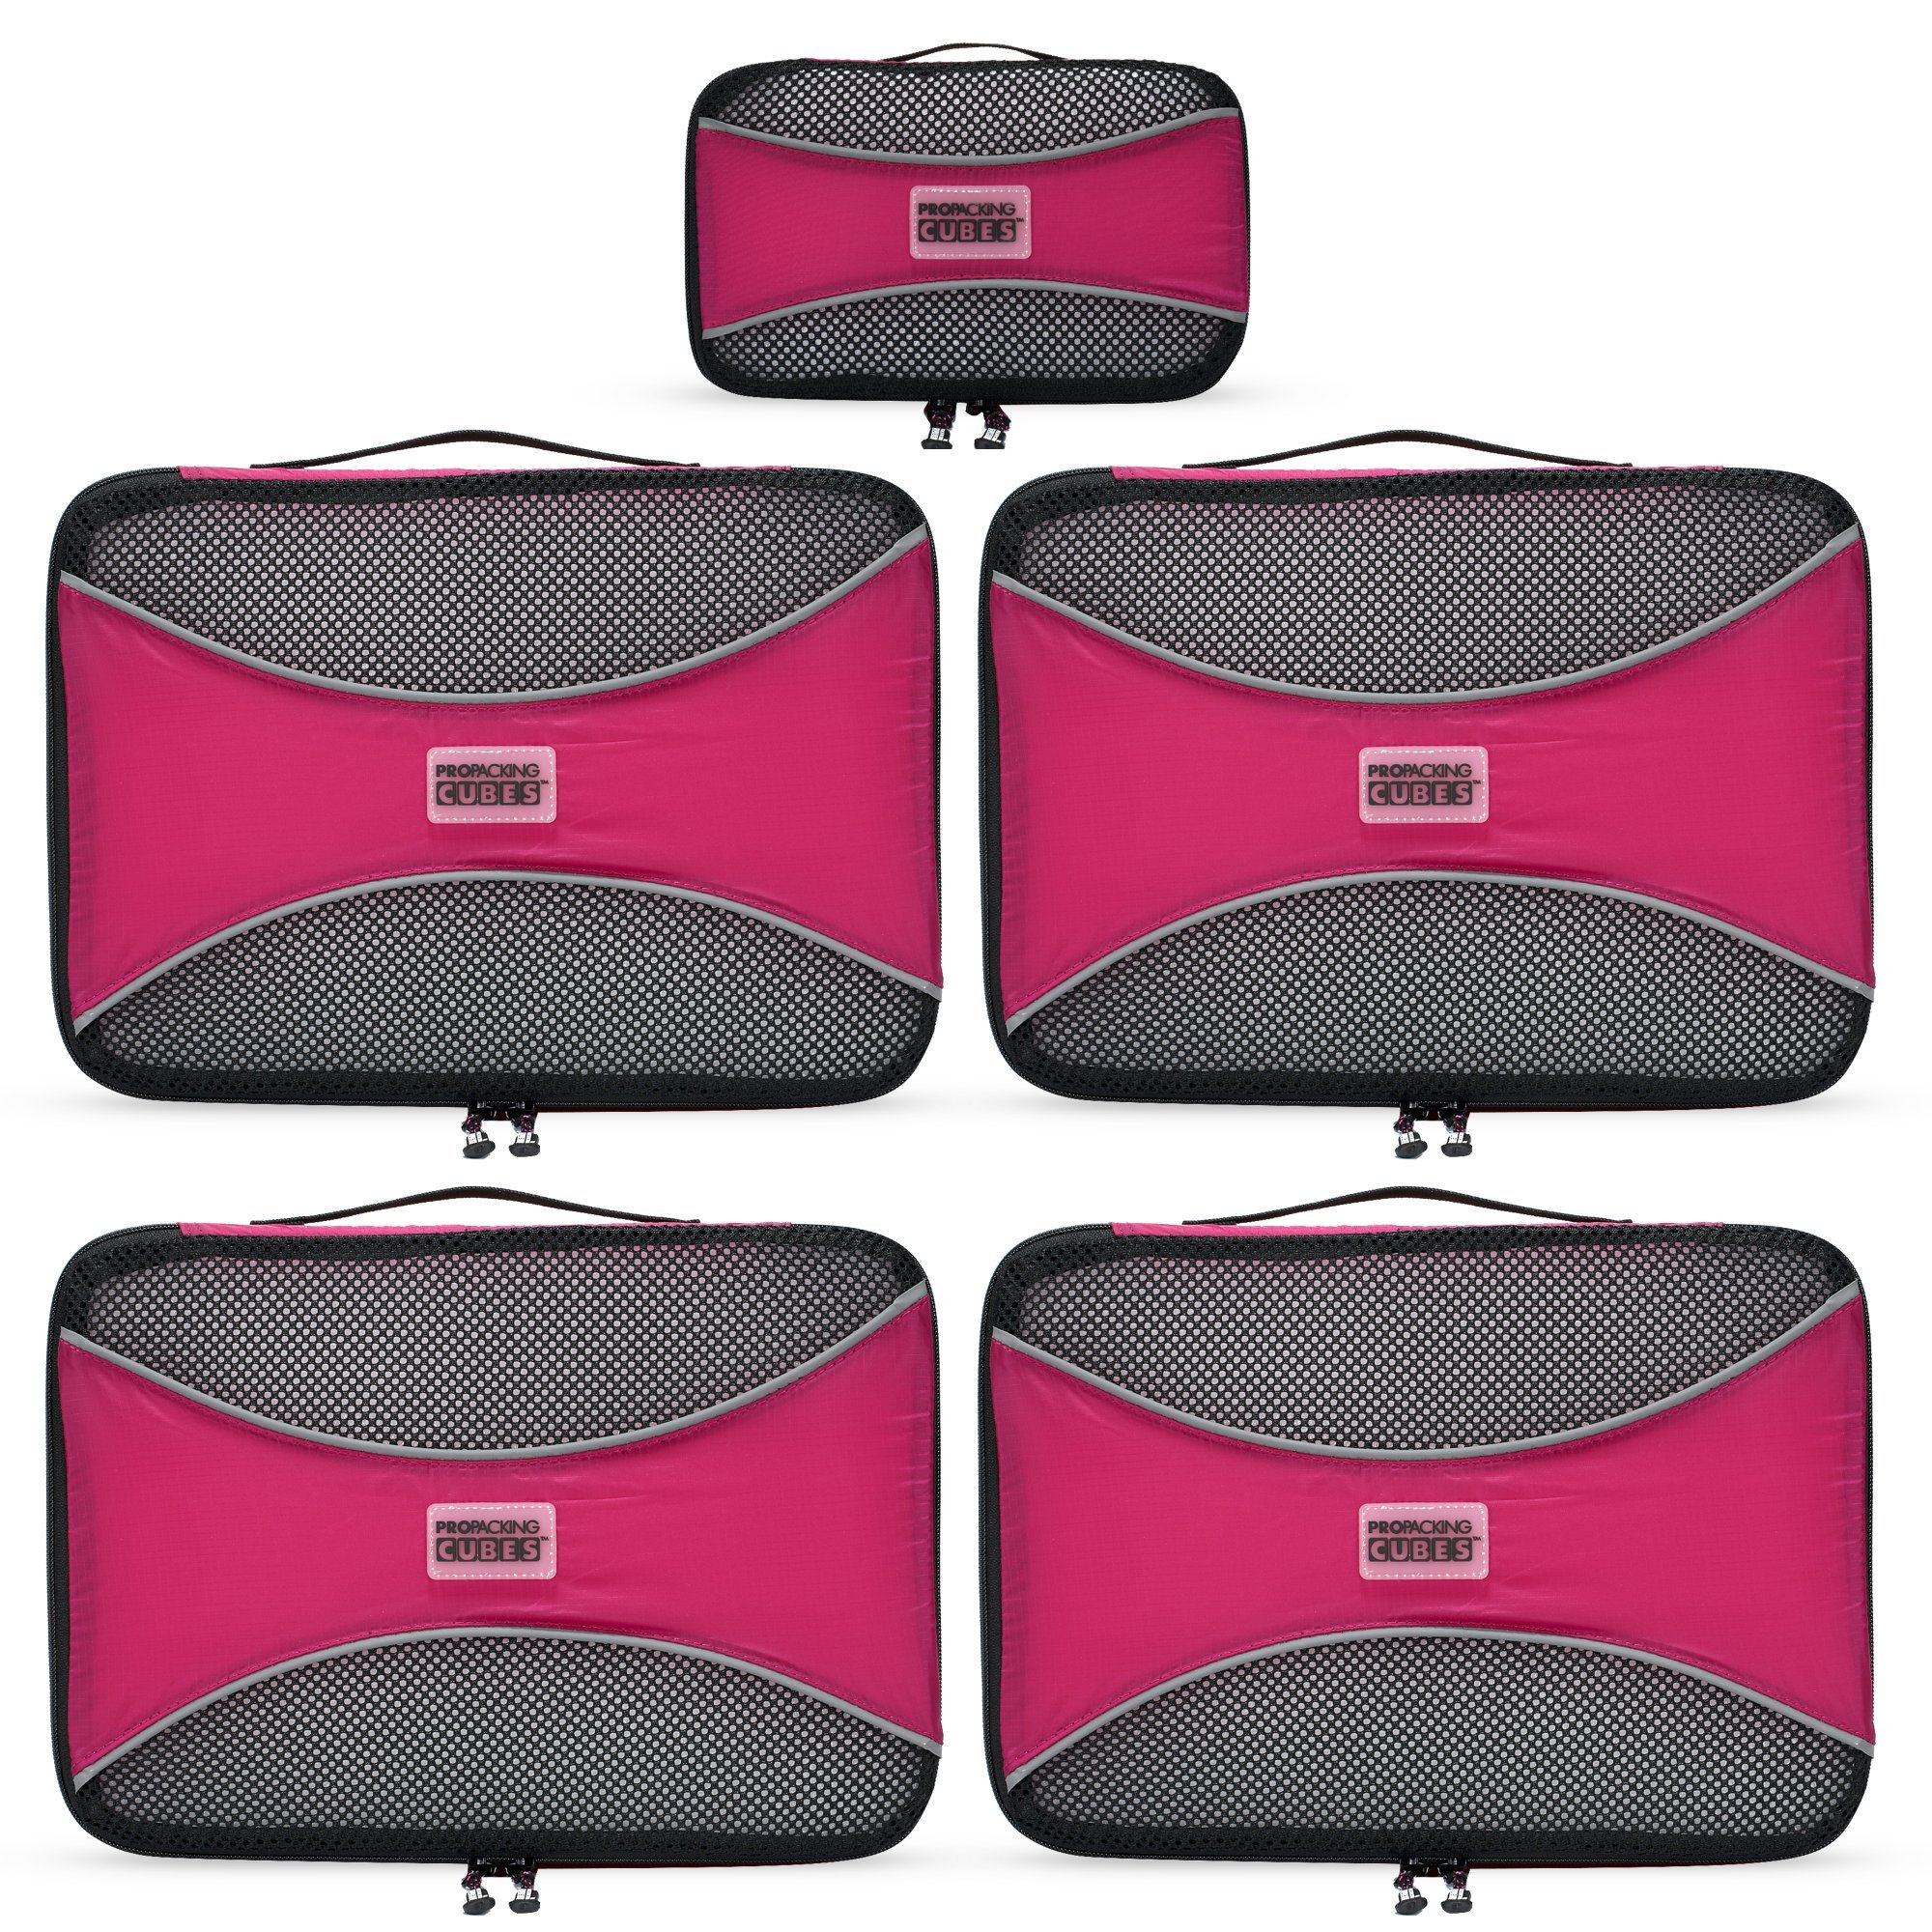 PRO Packing Cubes | 5 Pc Value Set | Organizers & Compression Travel Cube System for Backpacking & Luggage (Hot Pink)